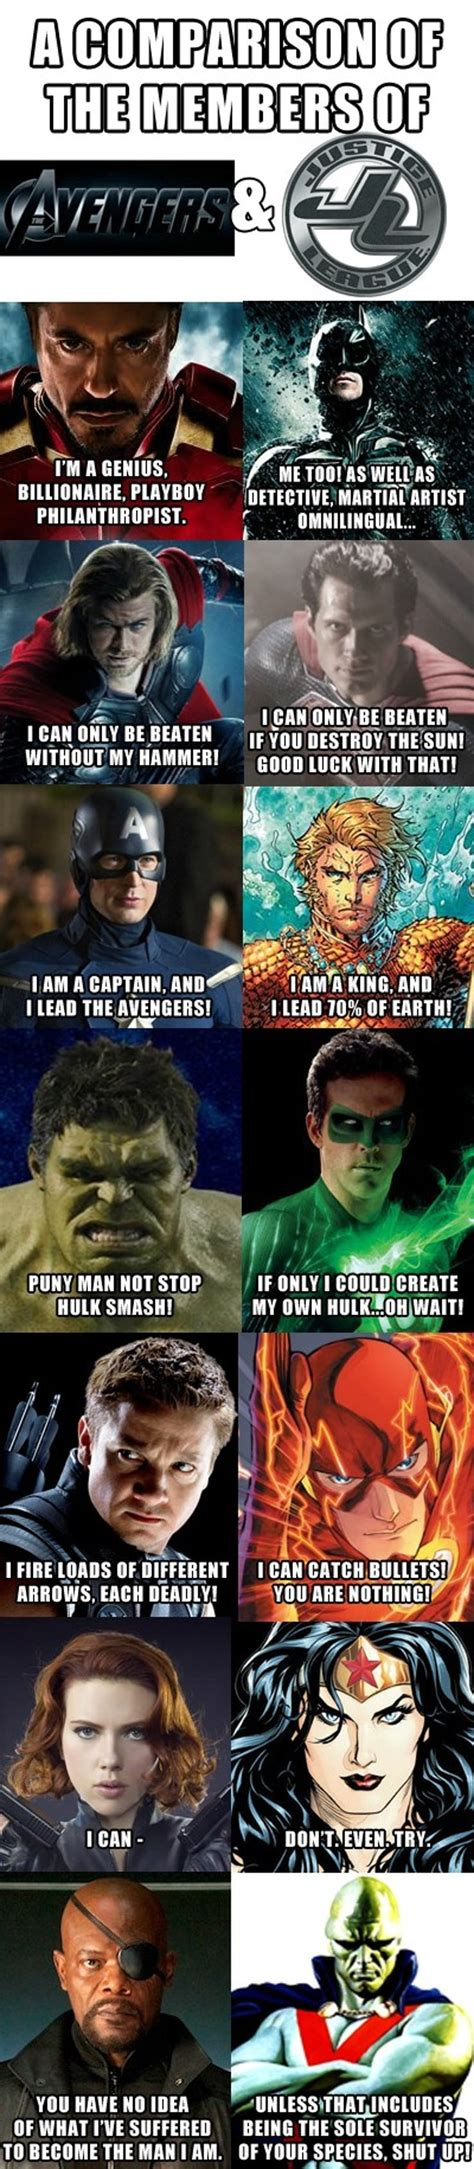 Justice League Meme - 37 hilarious justice league vs avengers memes that might